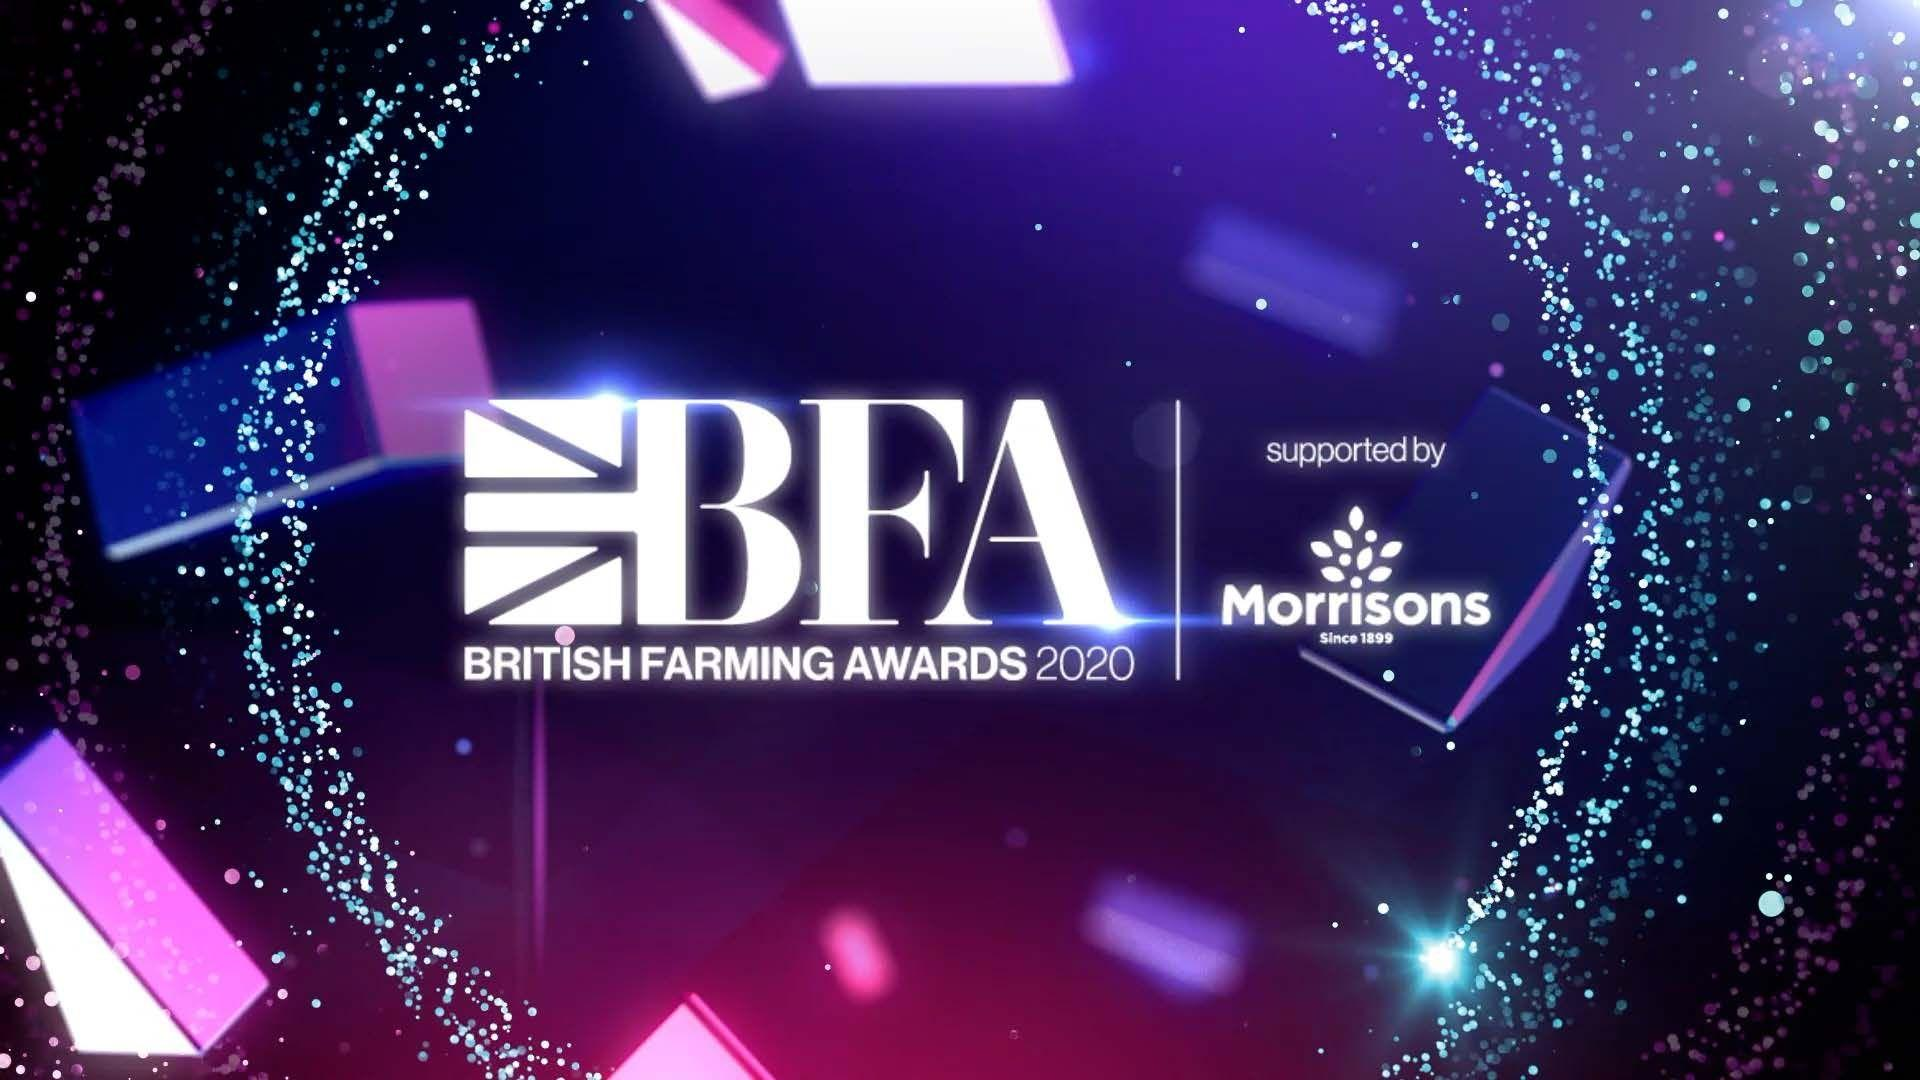 The British Farming Awards 2020 Logo